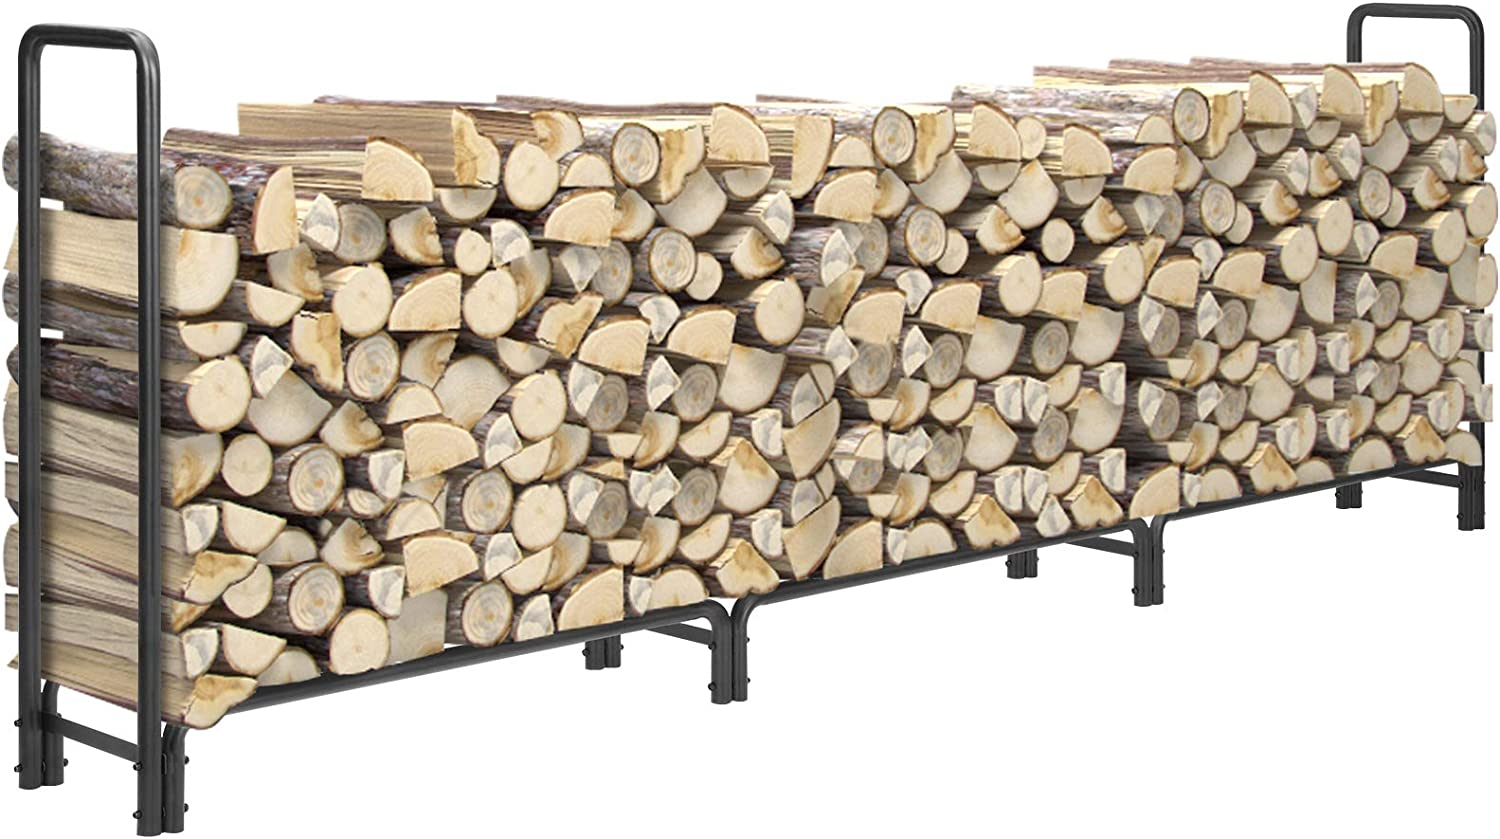 KINGSO 12ft Firewood Rack Outdoor Heavy Duty Log Rack Firewood Storage Rack Holder Steel Tubular Easy Assemble Fire Wood Rack for Patio Deck Adjustable Log Storage Stand for Outdoor Fireplace Tool